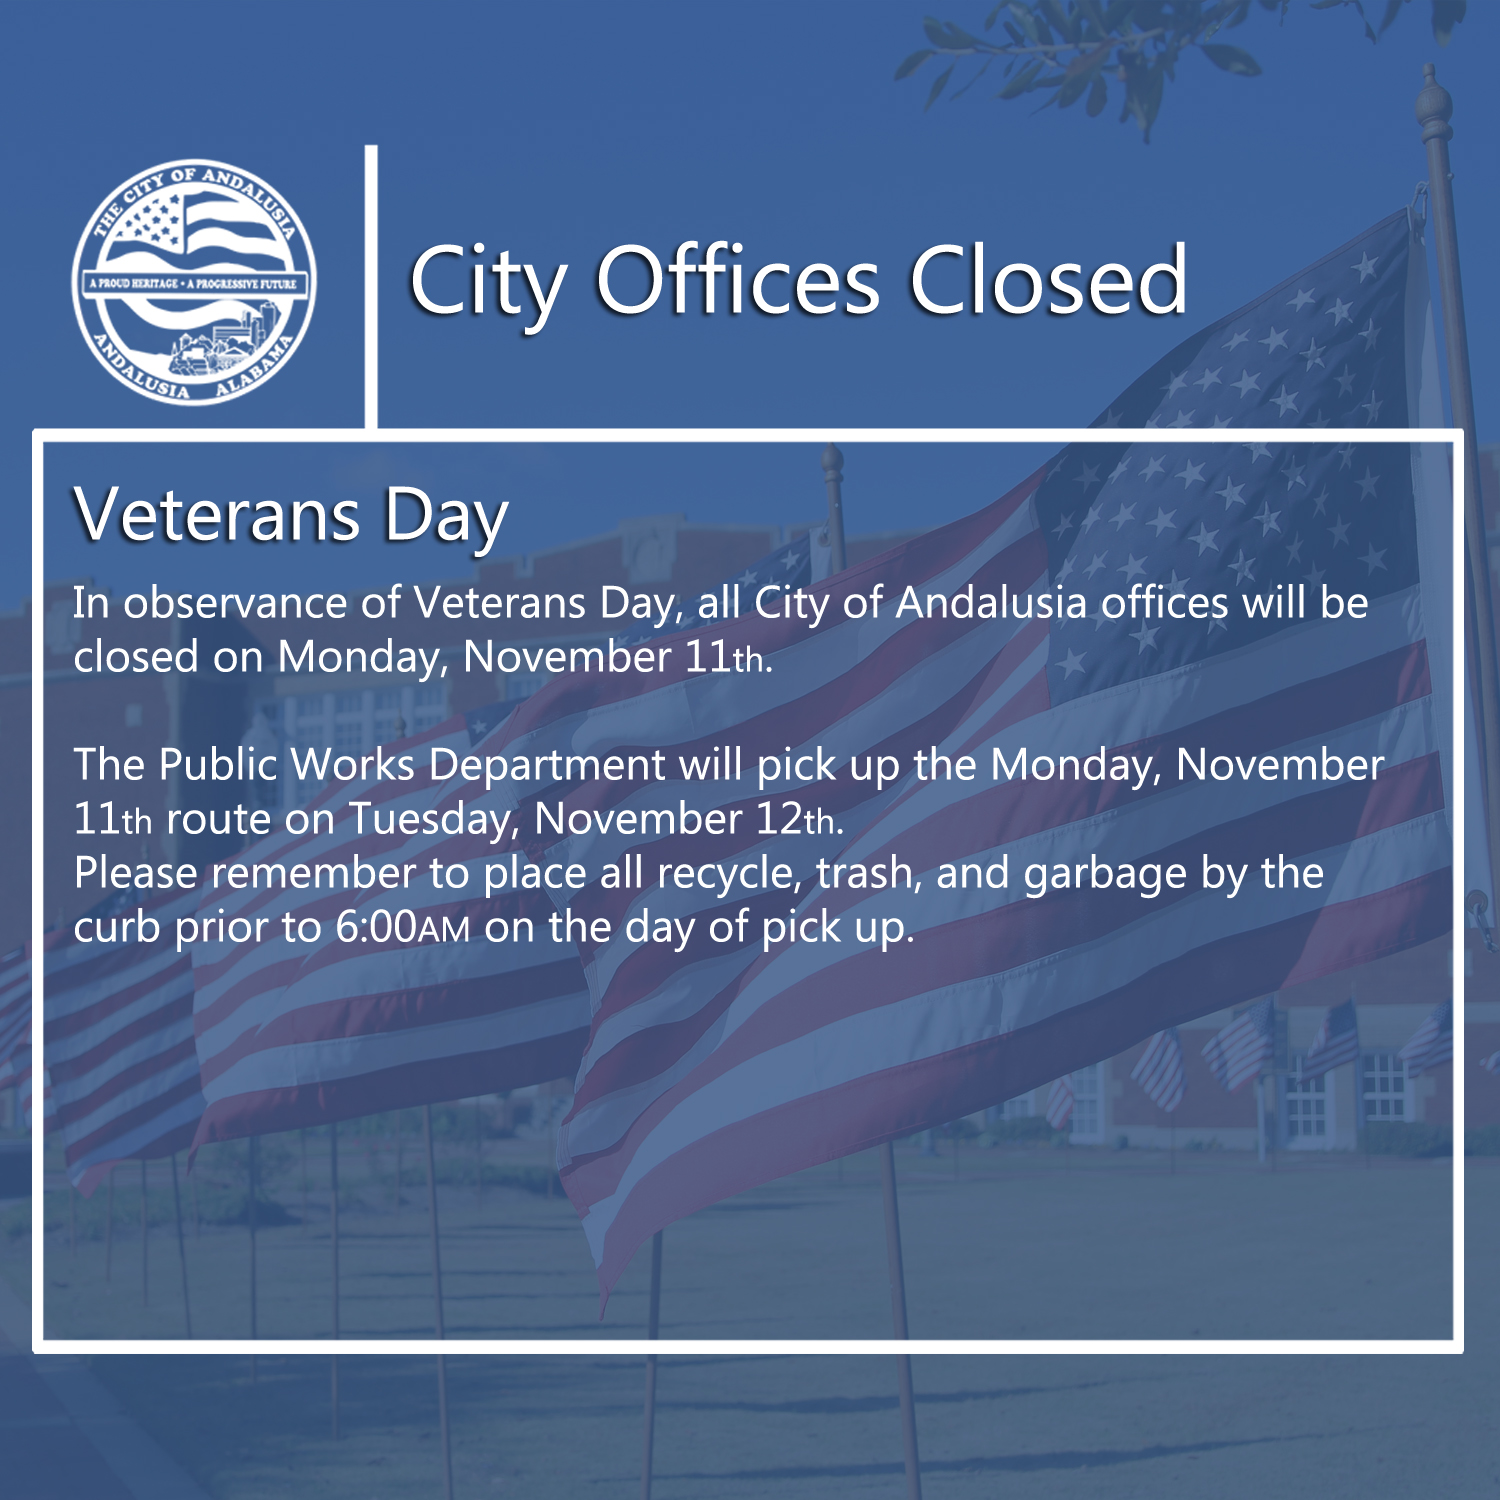 Facebook City Offices Closed Veterans